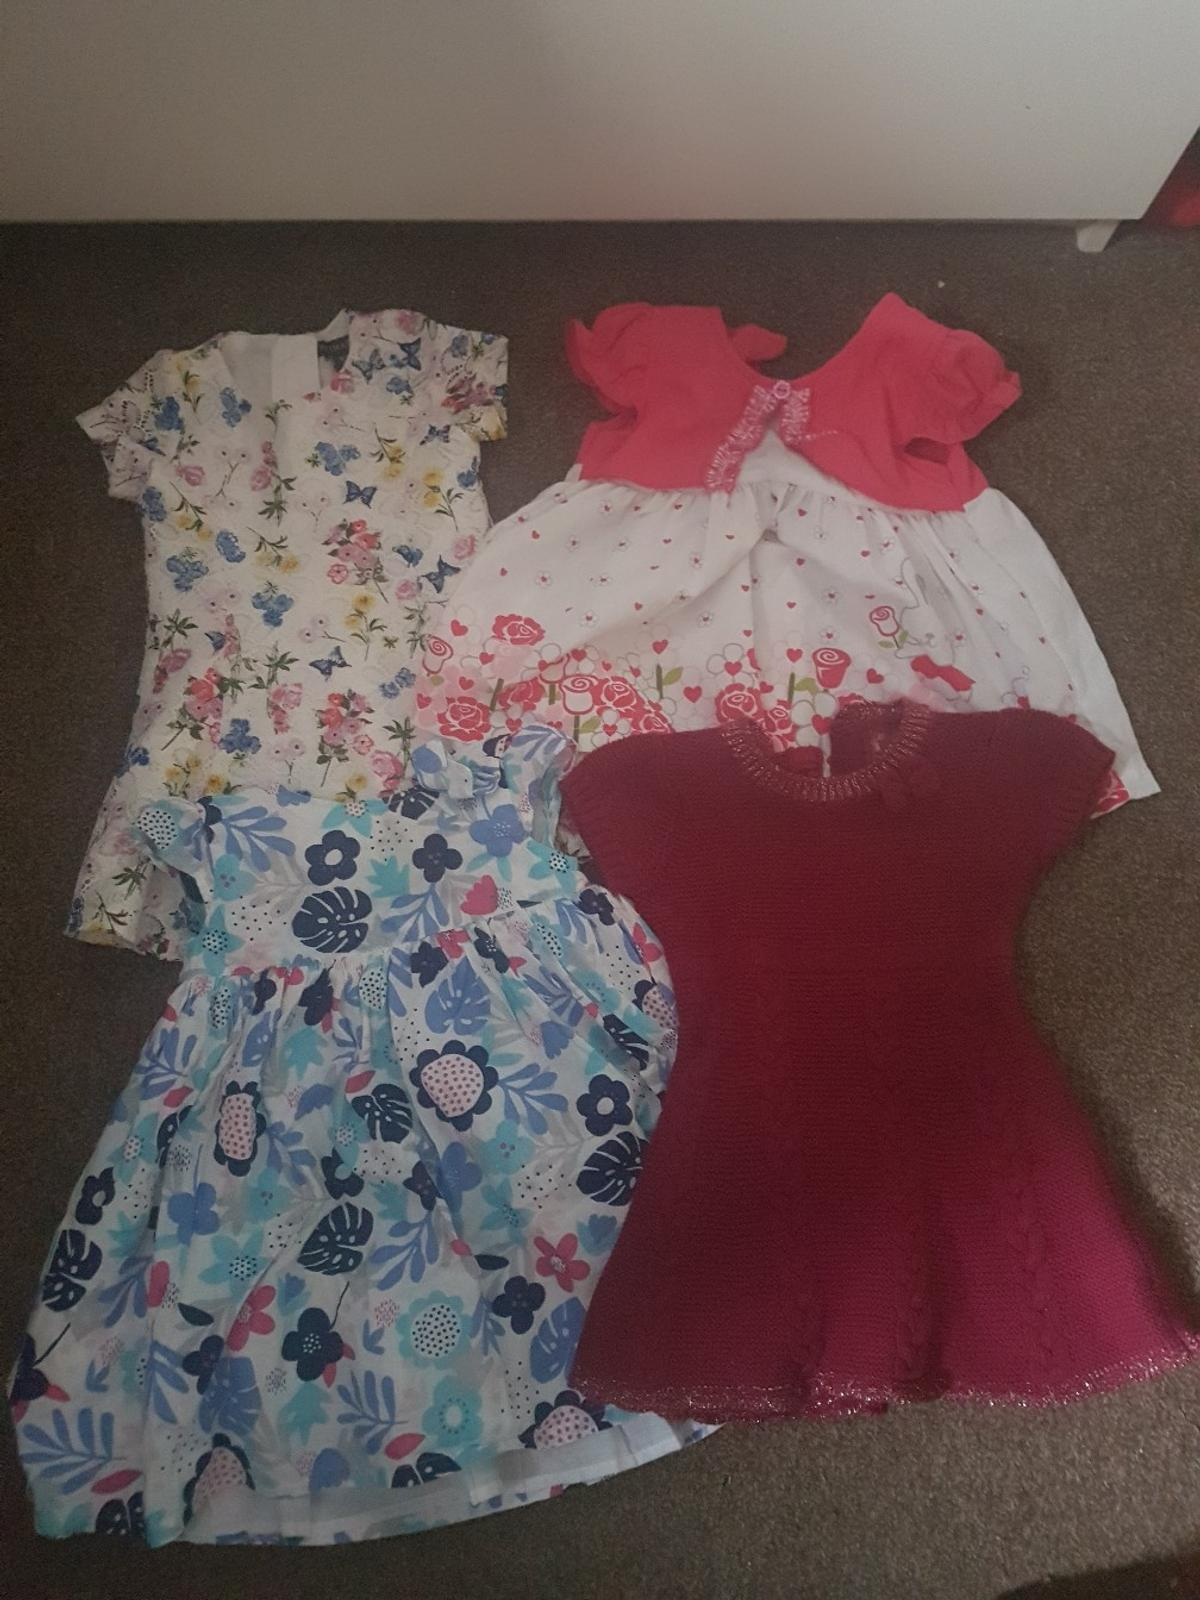 excellent condition, 15 dresses, tops vests and leggings. all washed and ready to go. from Mothercare, Primark, George, joules.